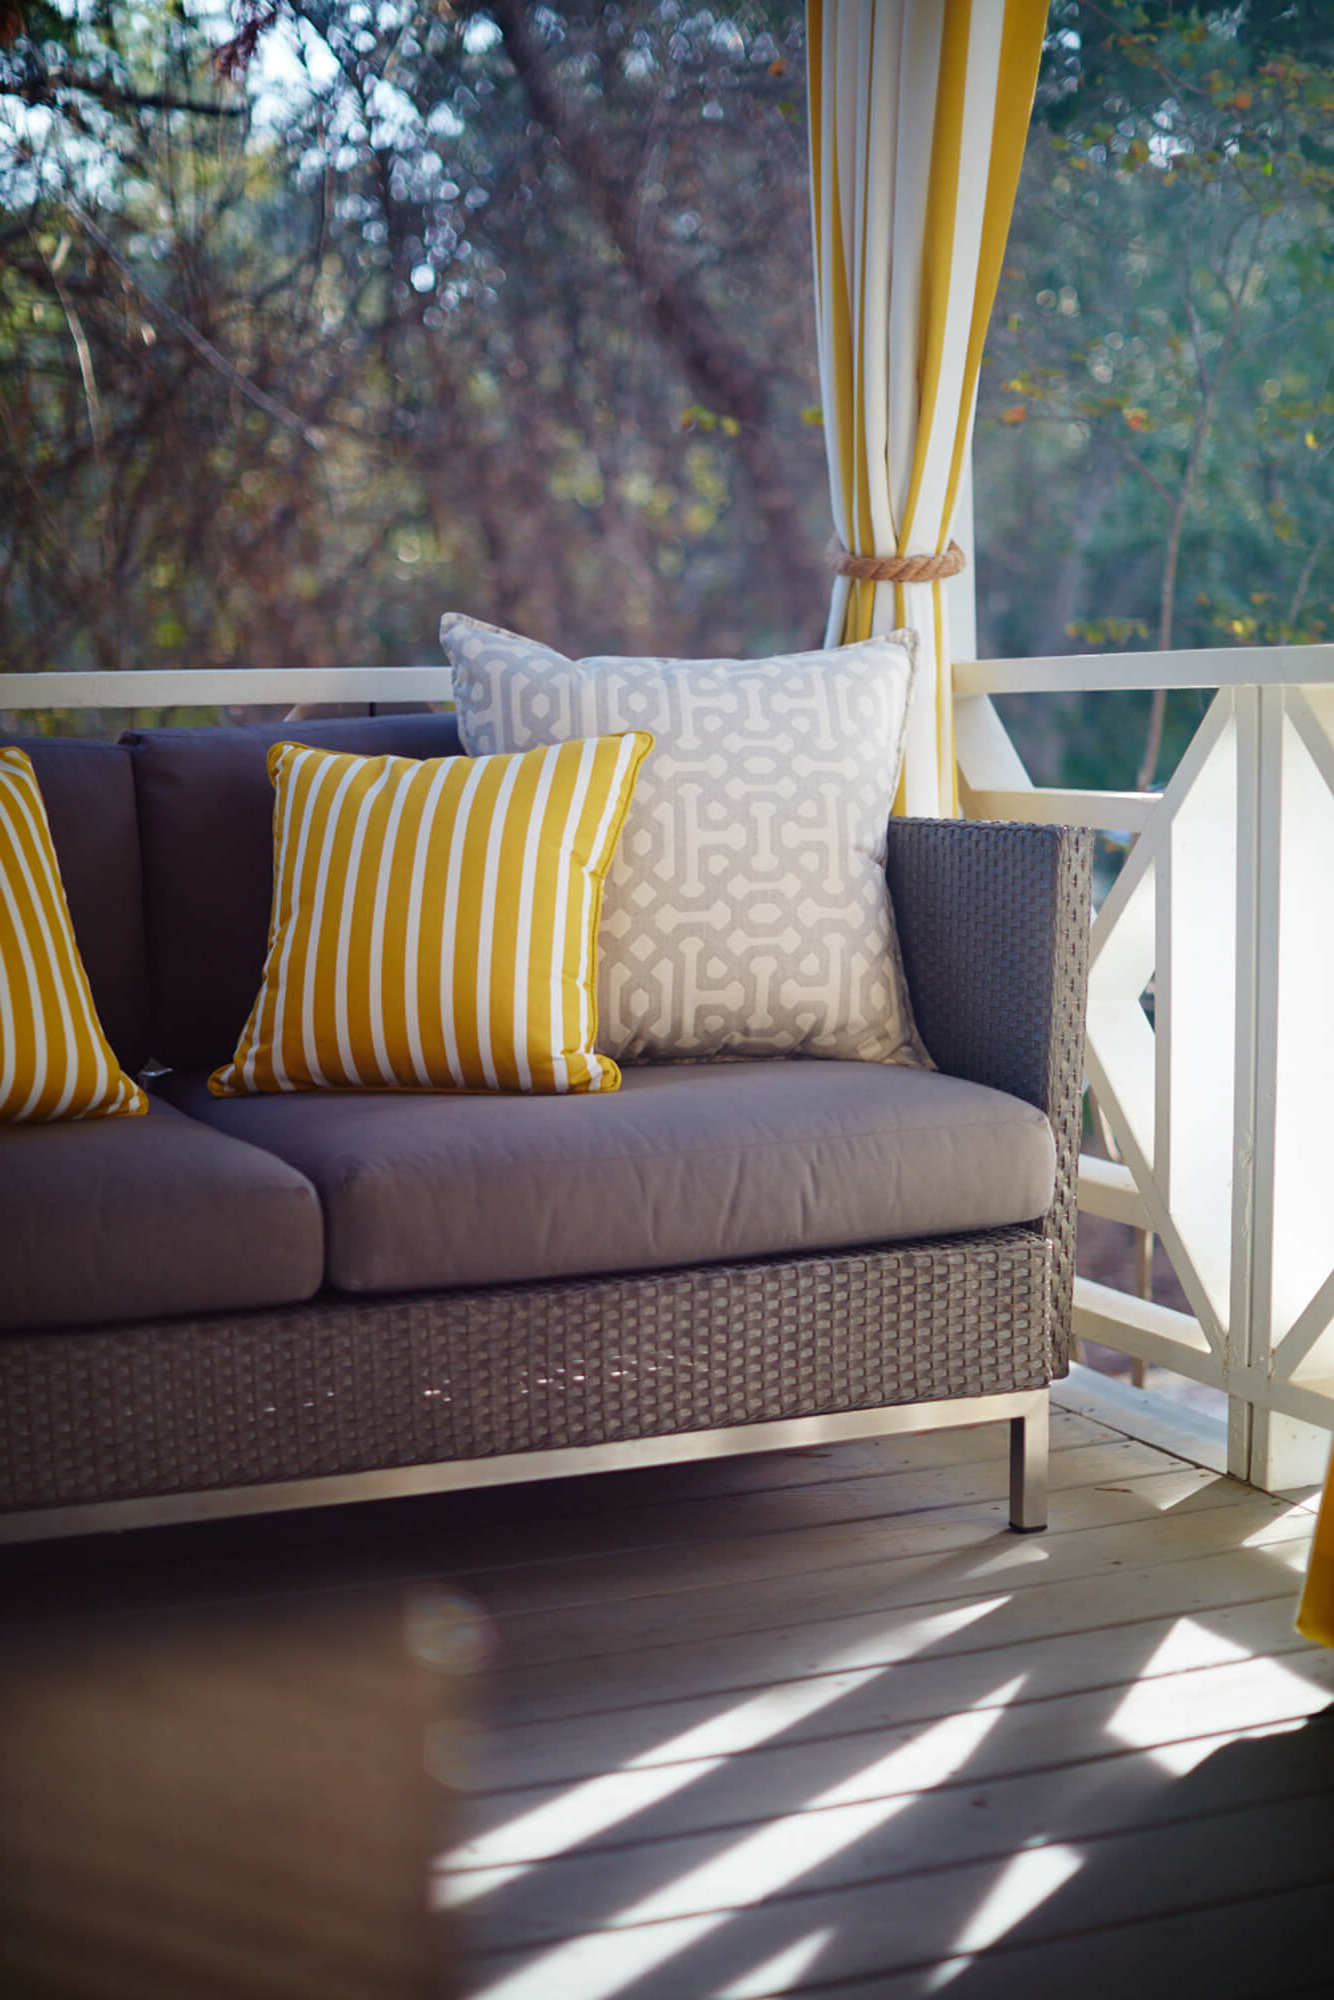 2019 Fabrics For The Home – Indoor & Outdoor Fabrics – Sunbrella Fabrics With Regard To Throws For Sofas And Chairs (Gallery 12 of 20)